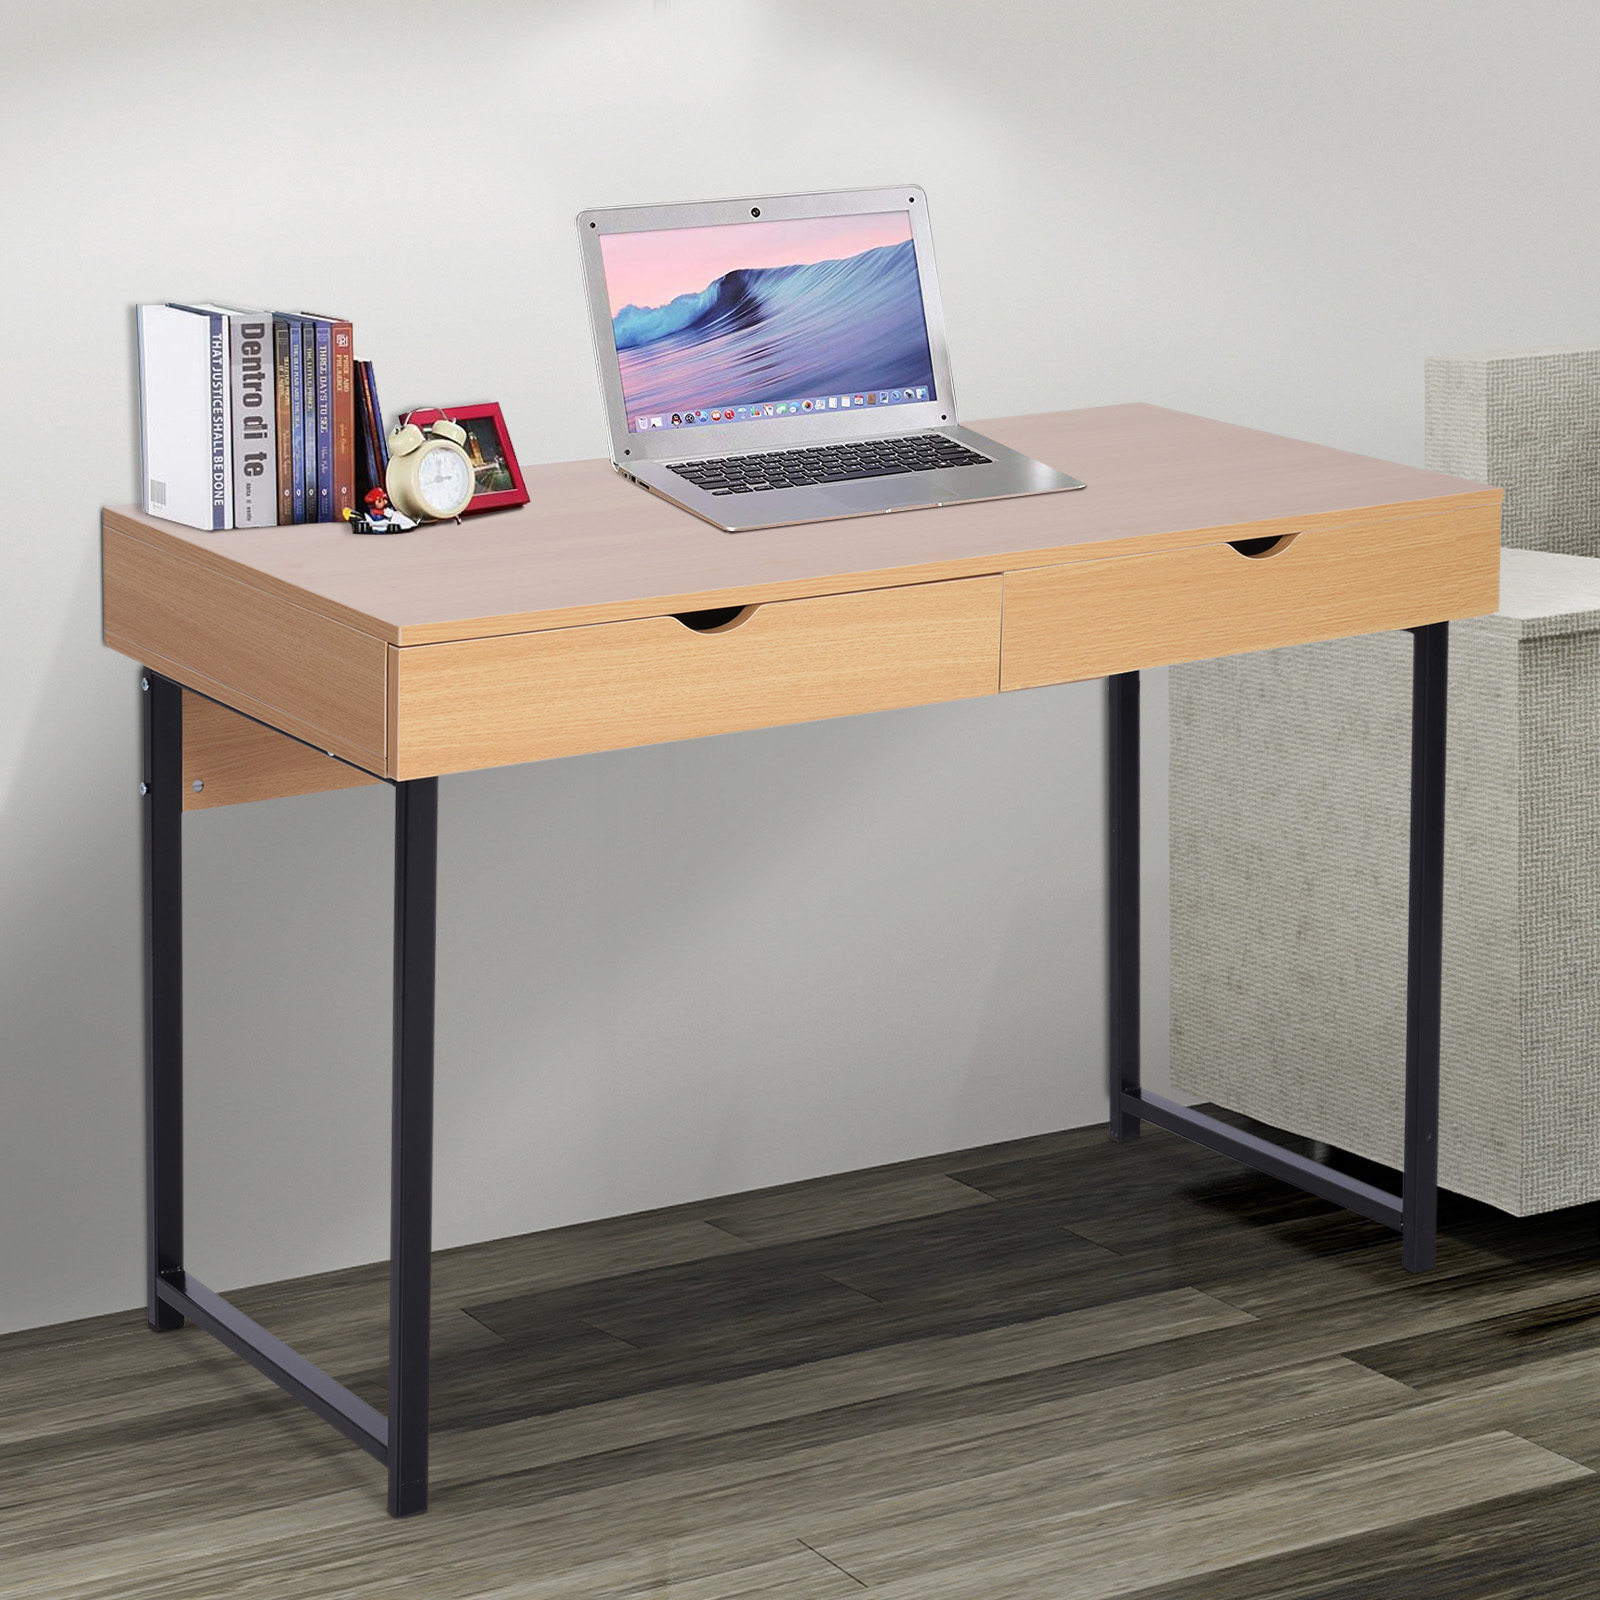 Modern Compact Computer Desk Details About 48 L Wood Modern Computer Table Storage Study Working Desk W Slide Out Drawers